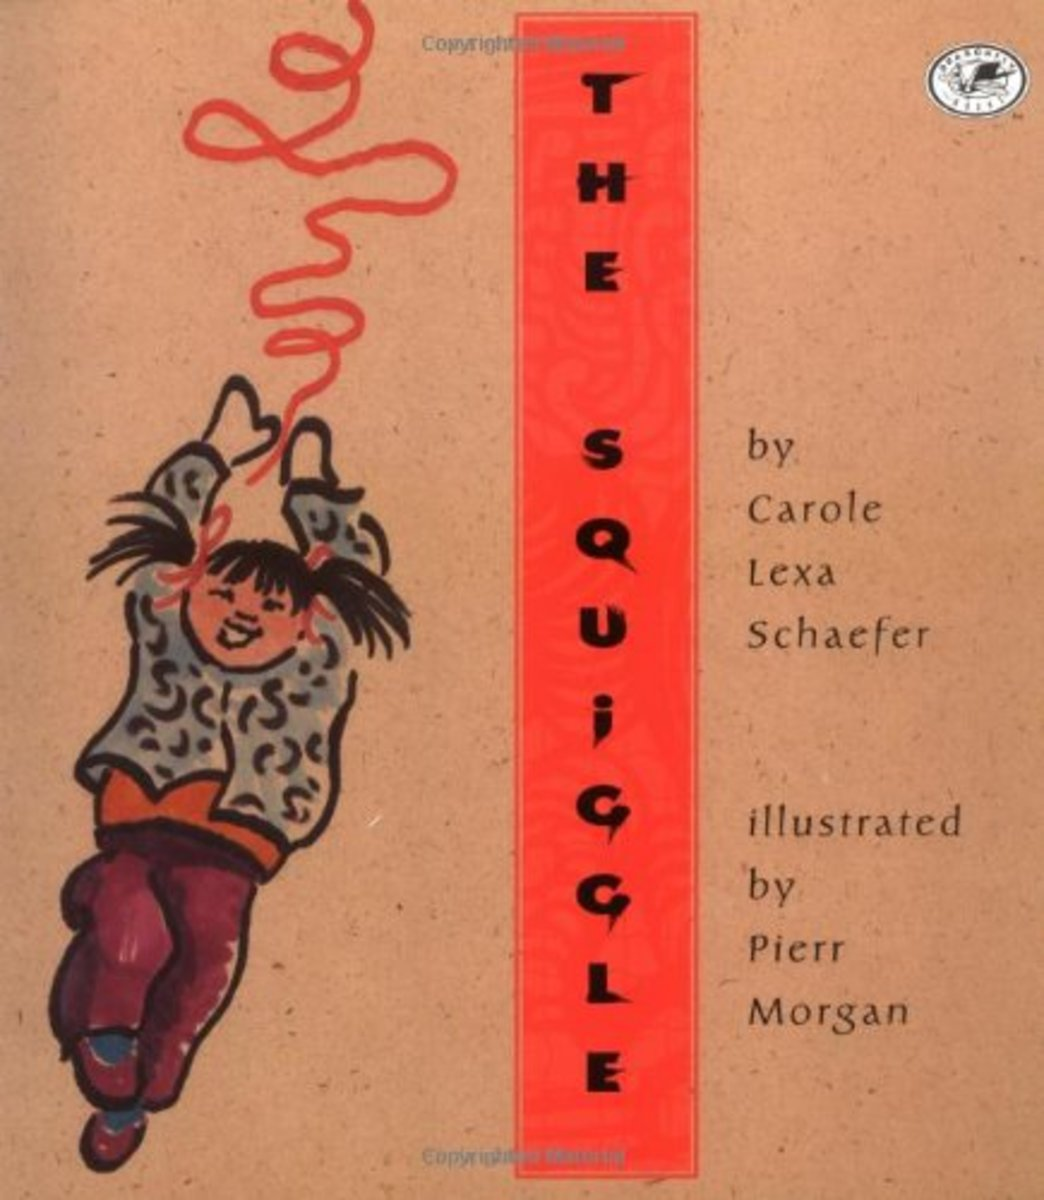 The Squiggle by Carole Lexa Schaefer